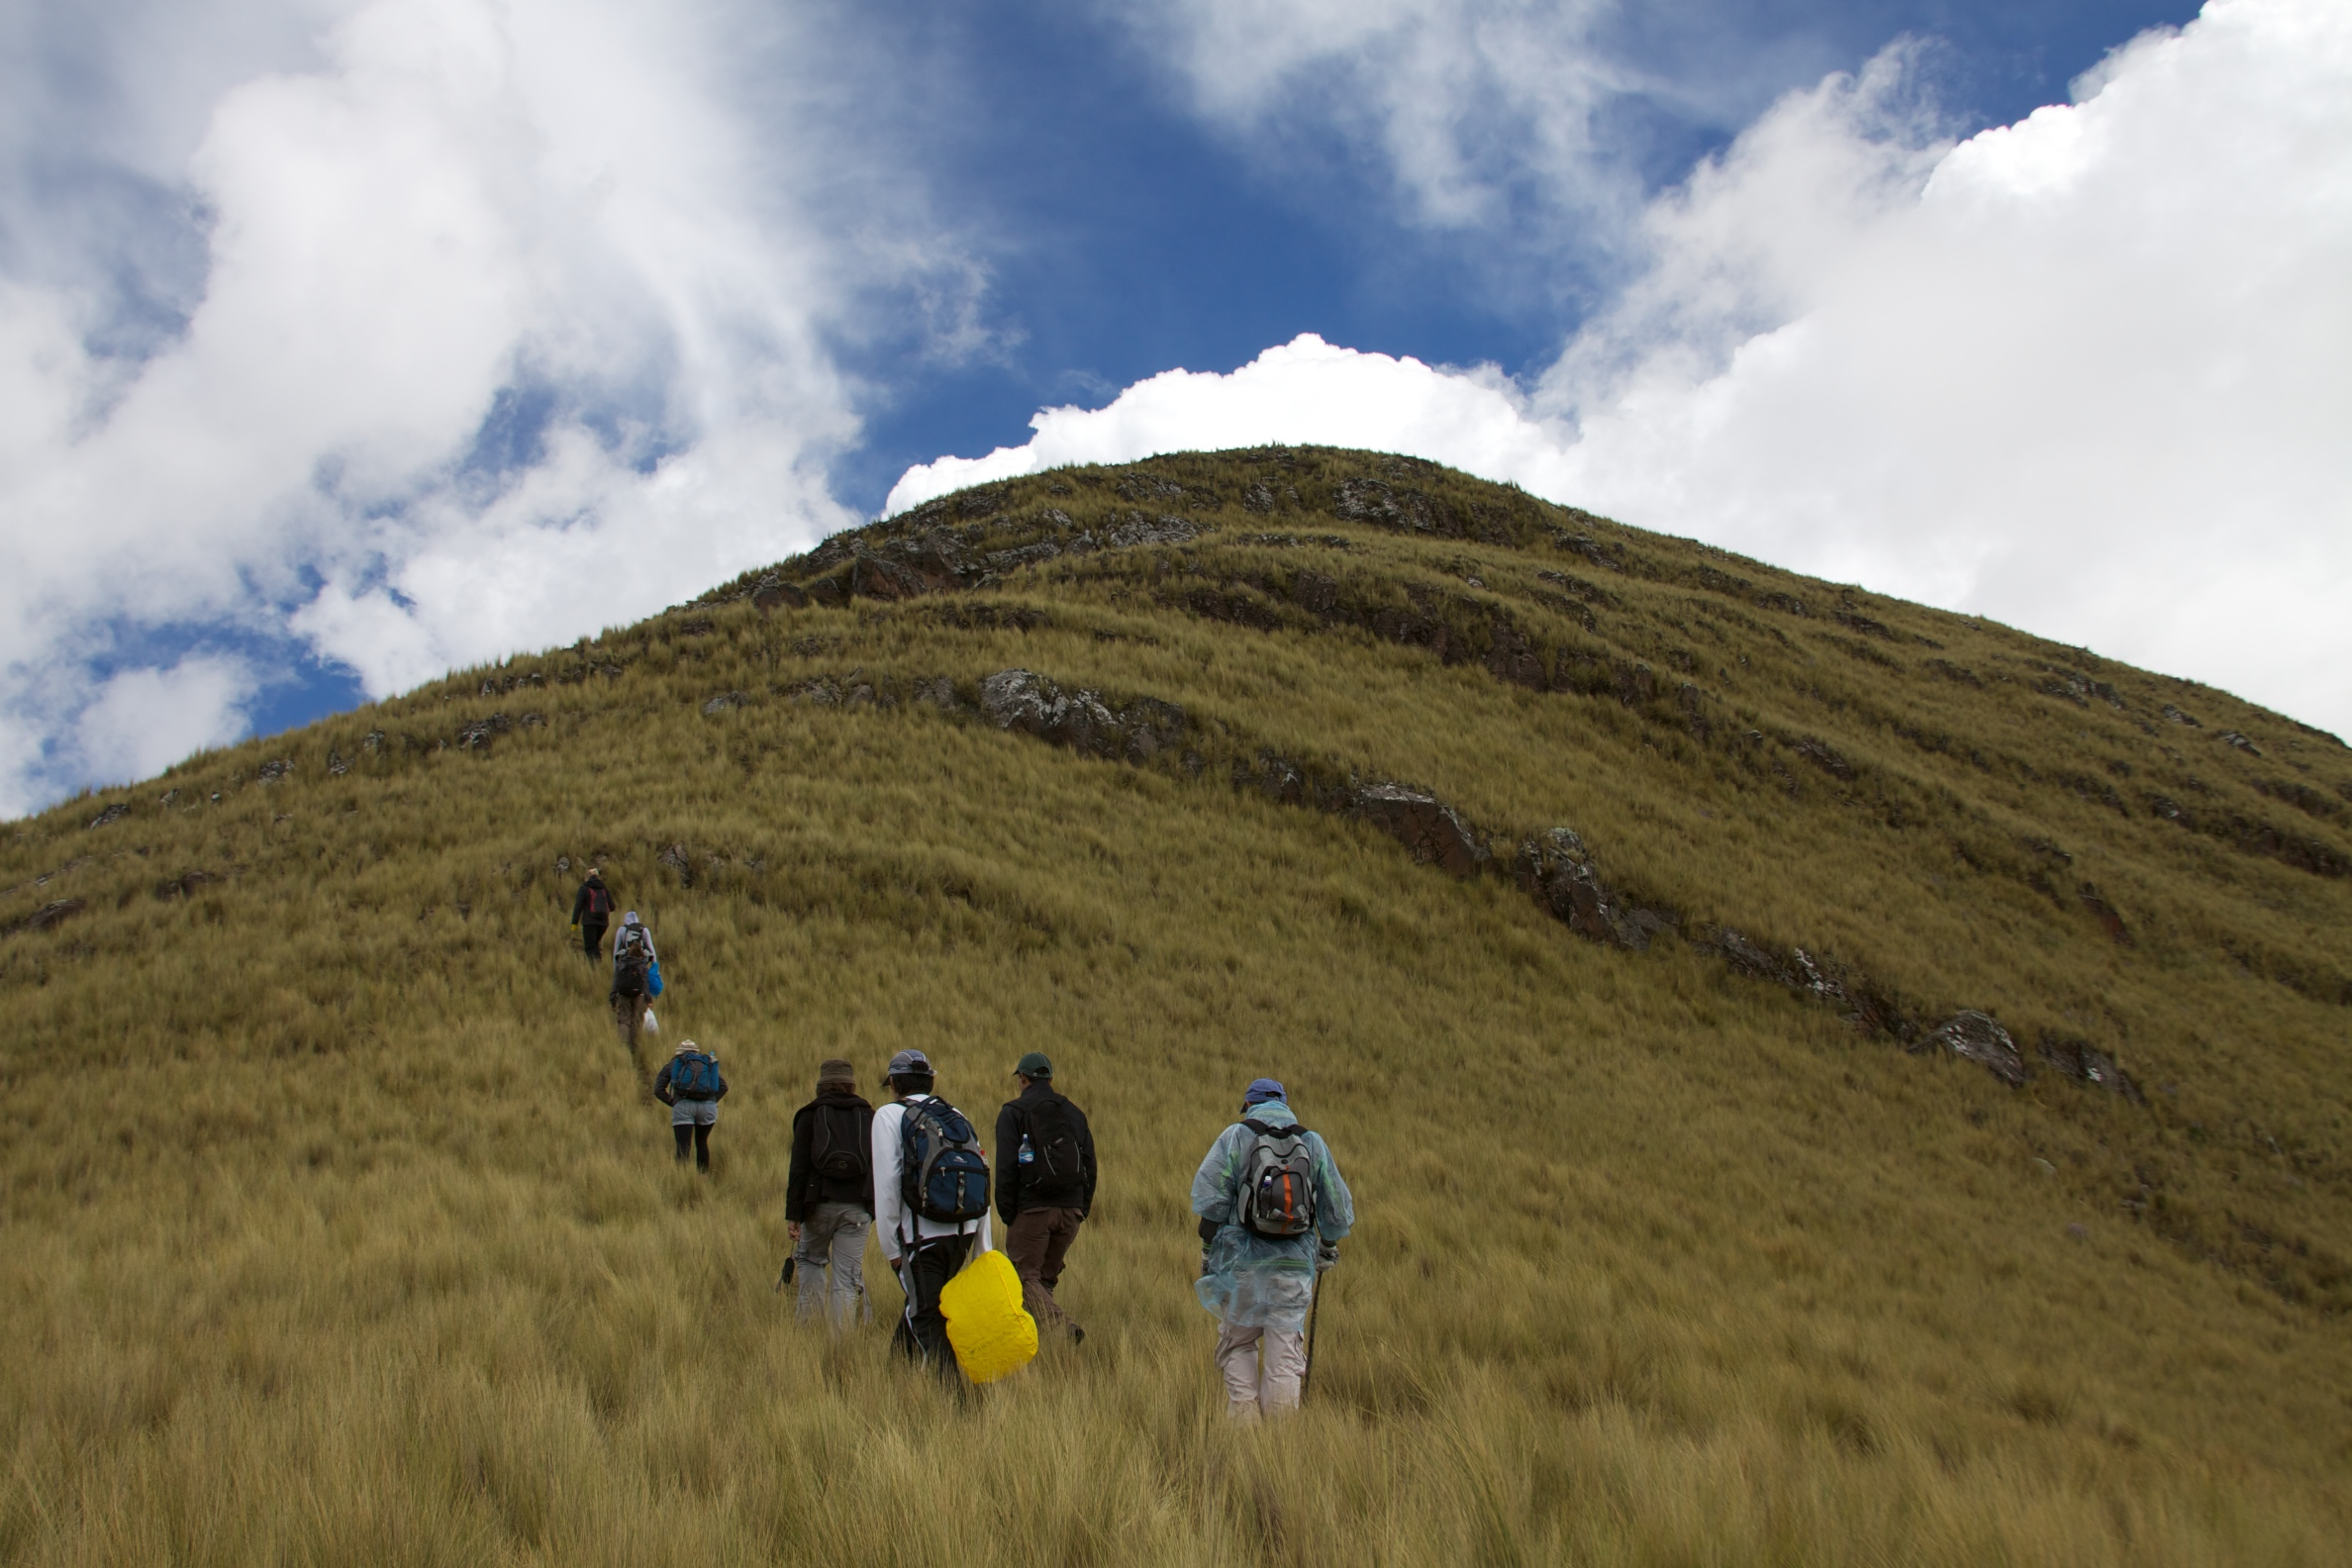 File:Peru - Cusco Trekking 021 - climbing the hills (7114029049).jpg - Wikimedia  Commons